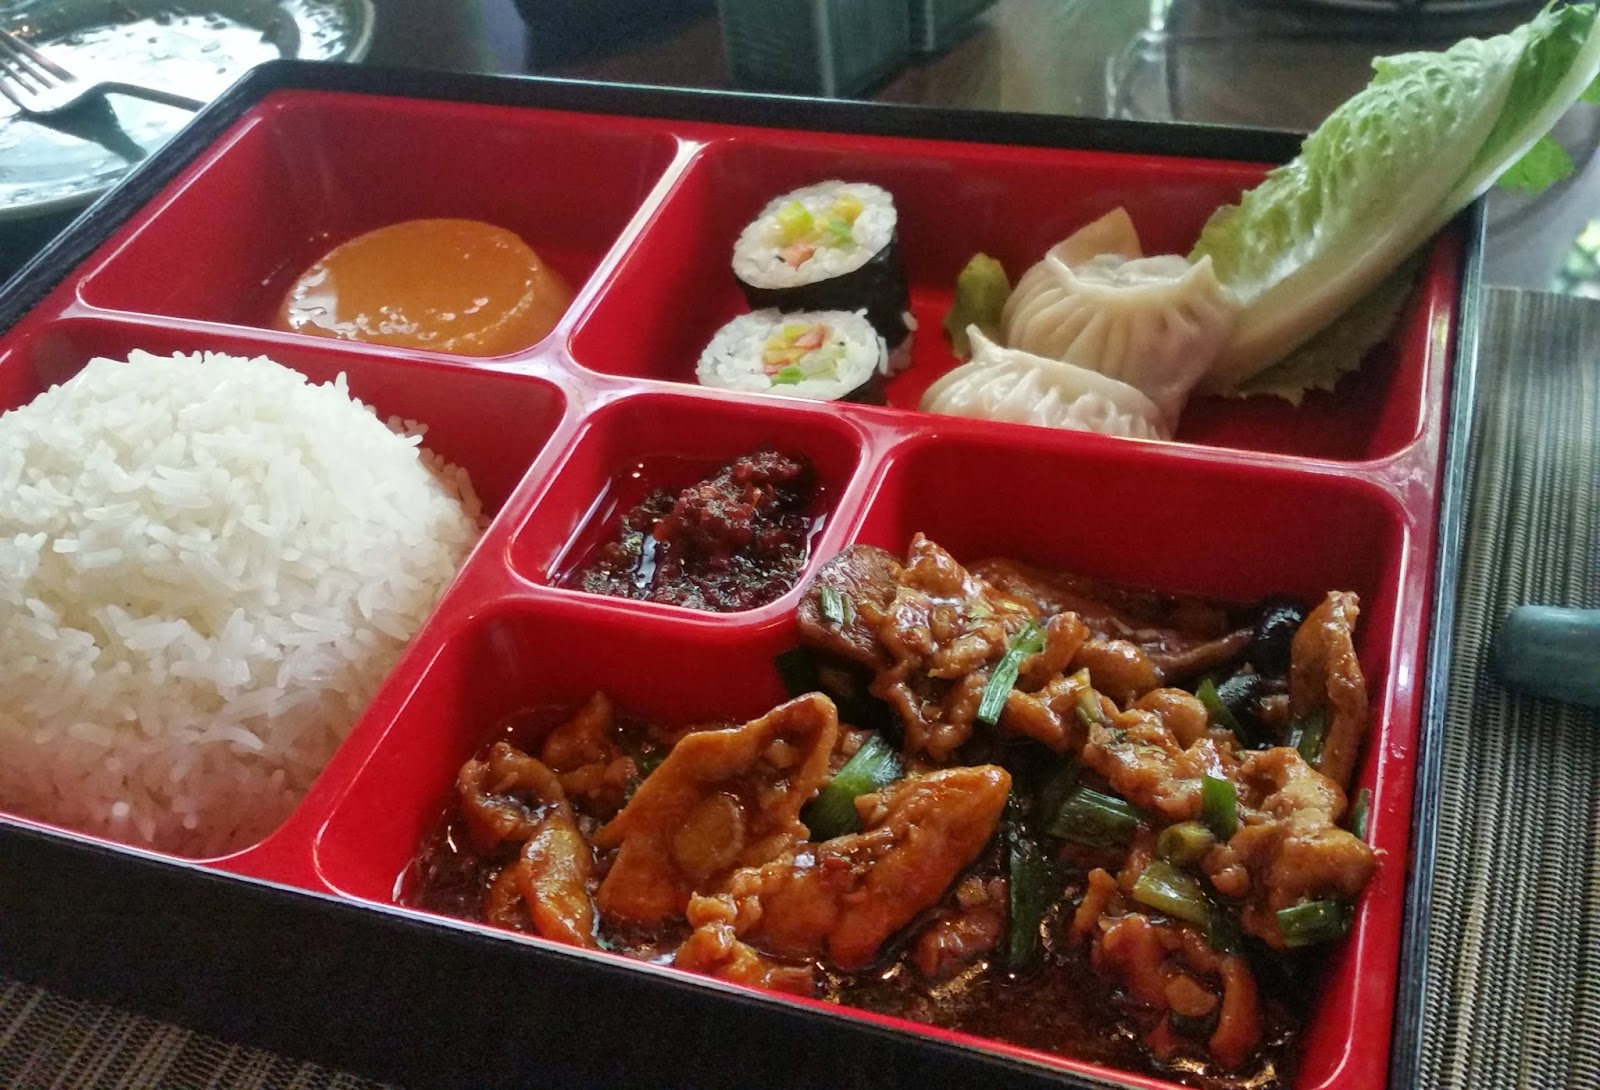 quick bytes bento box japanese lunch at mekong marigold foodaholix. Black Bedroom Furniture Sets. Home Design Ideas